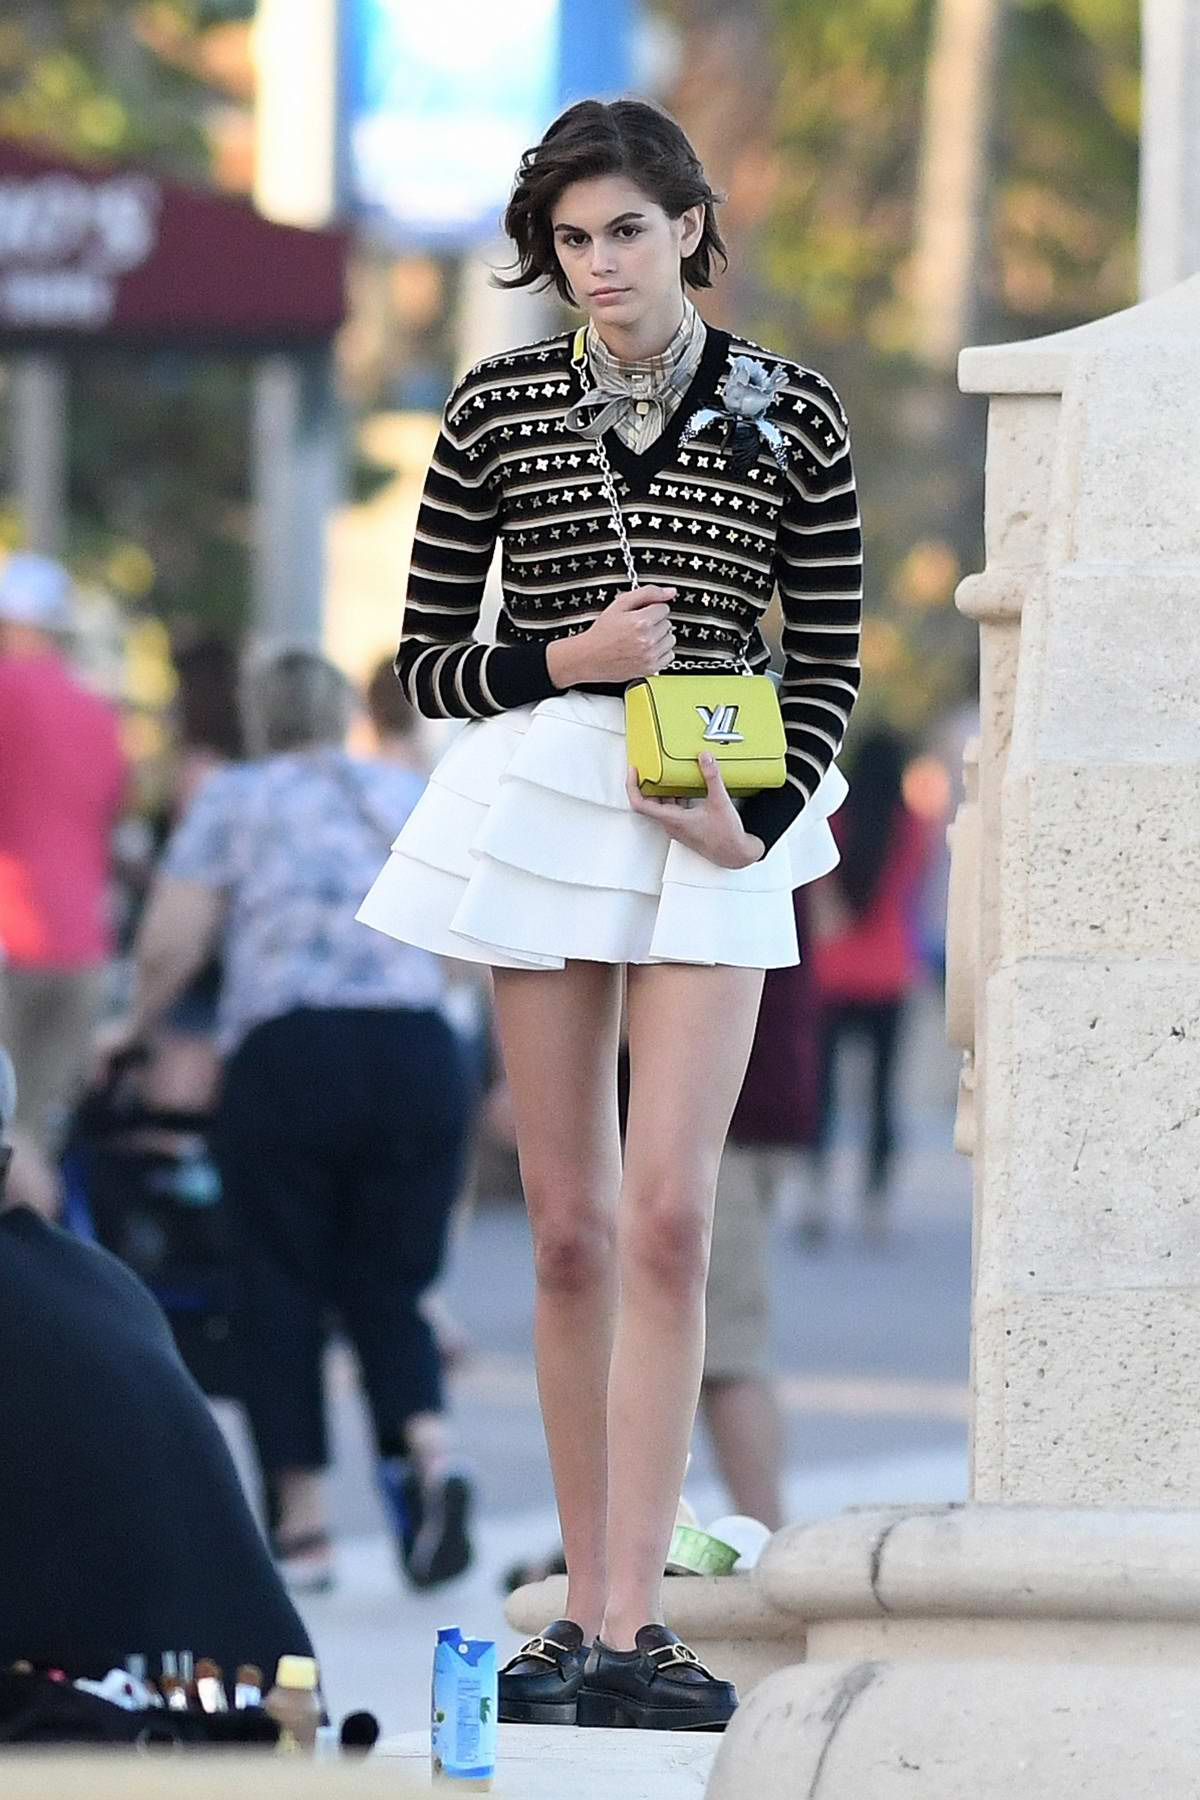 Kaia Gerber shows off her mile-long legs during day 3 of Louis Vuitton photoshoot in Miami, Florida